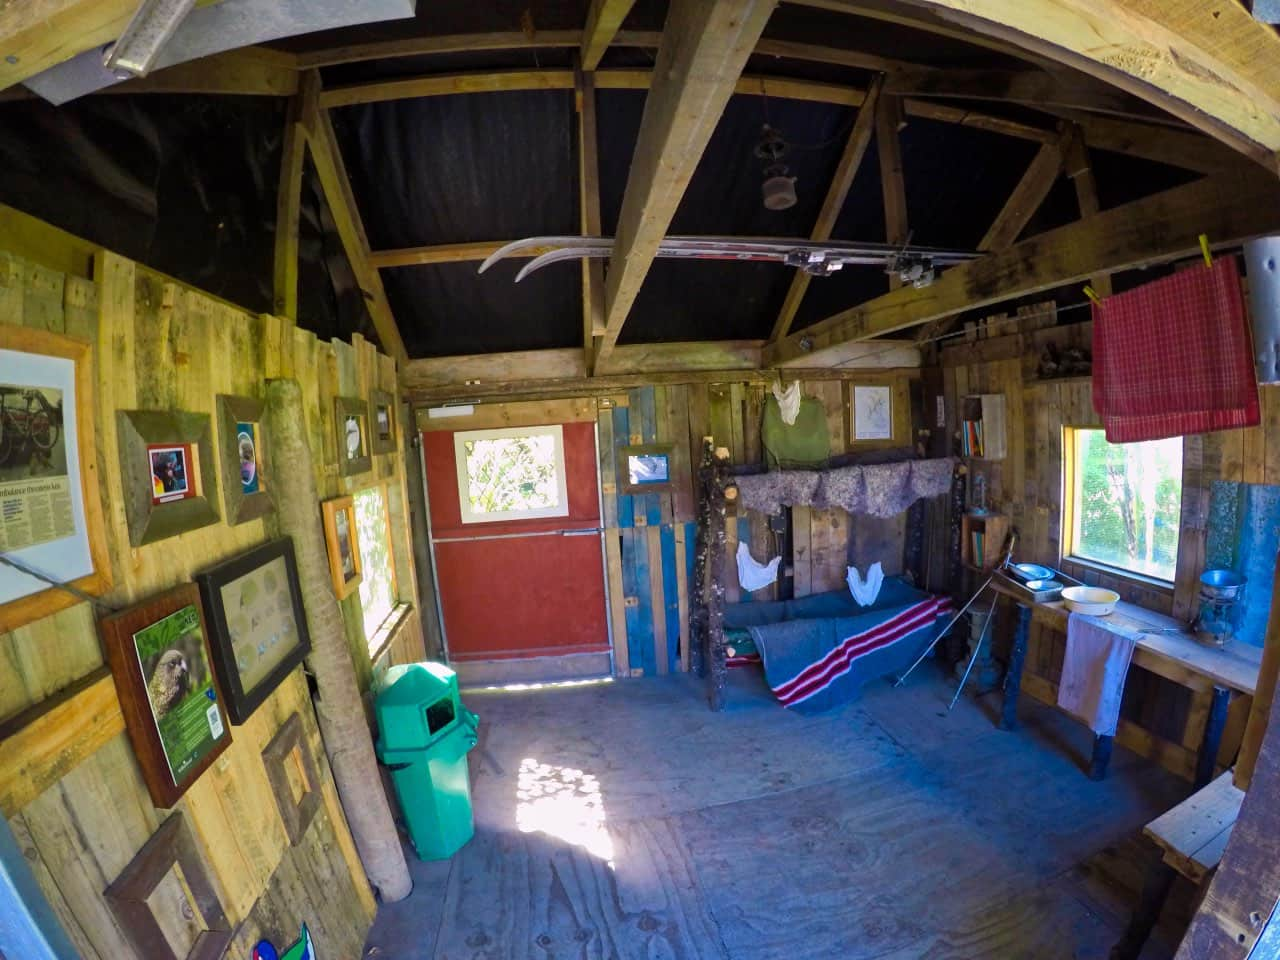 Willowbank-Wildlife-reserve-Chistchurch-inside-House